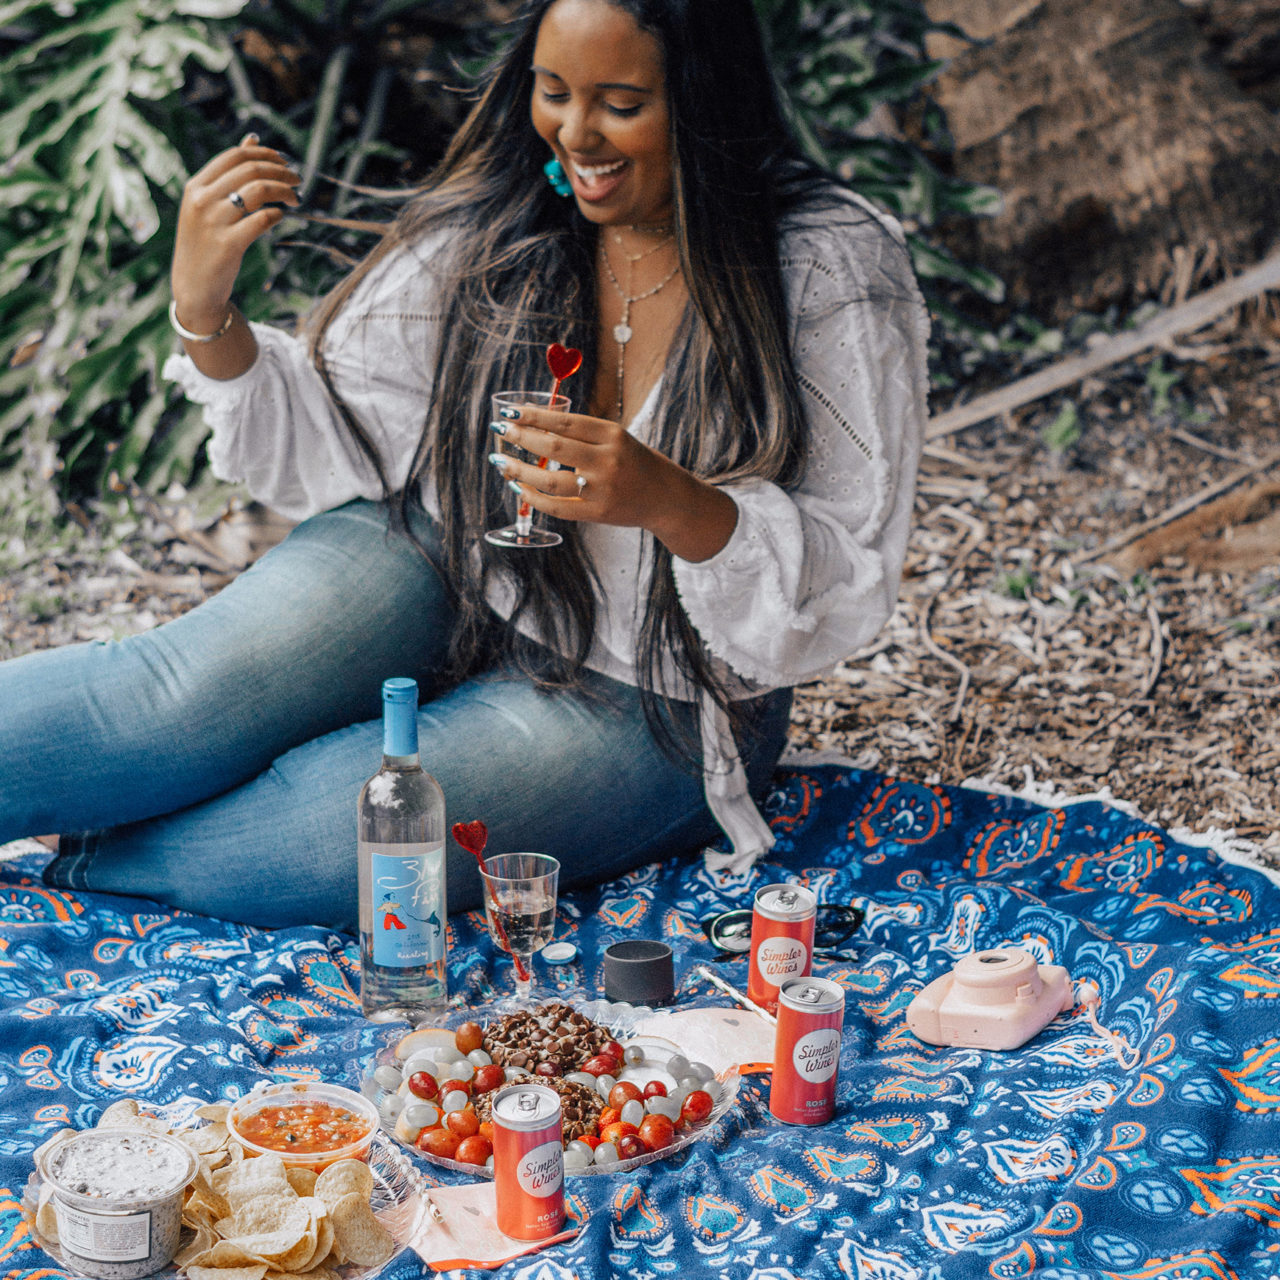 Bougie on a Budget: Picturesque Picnic with the Girls